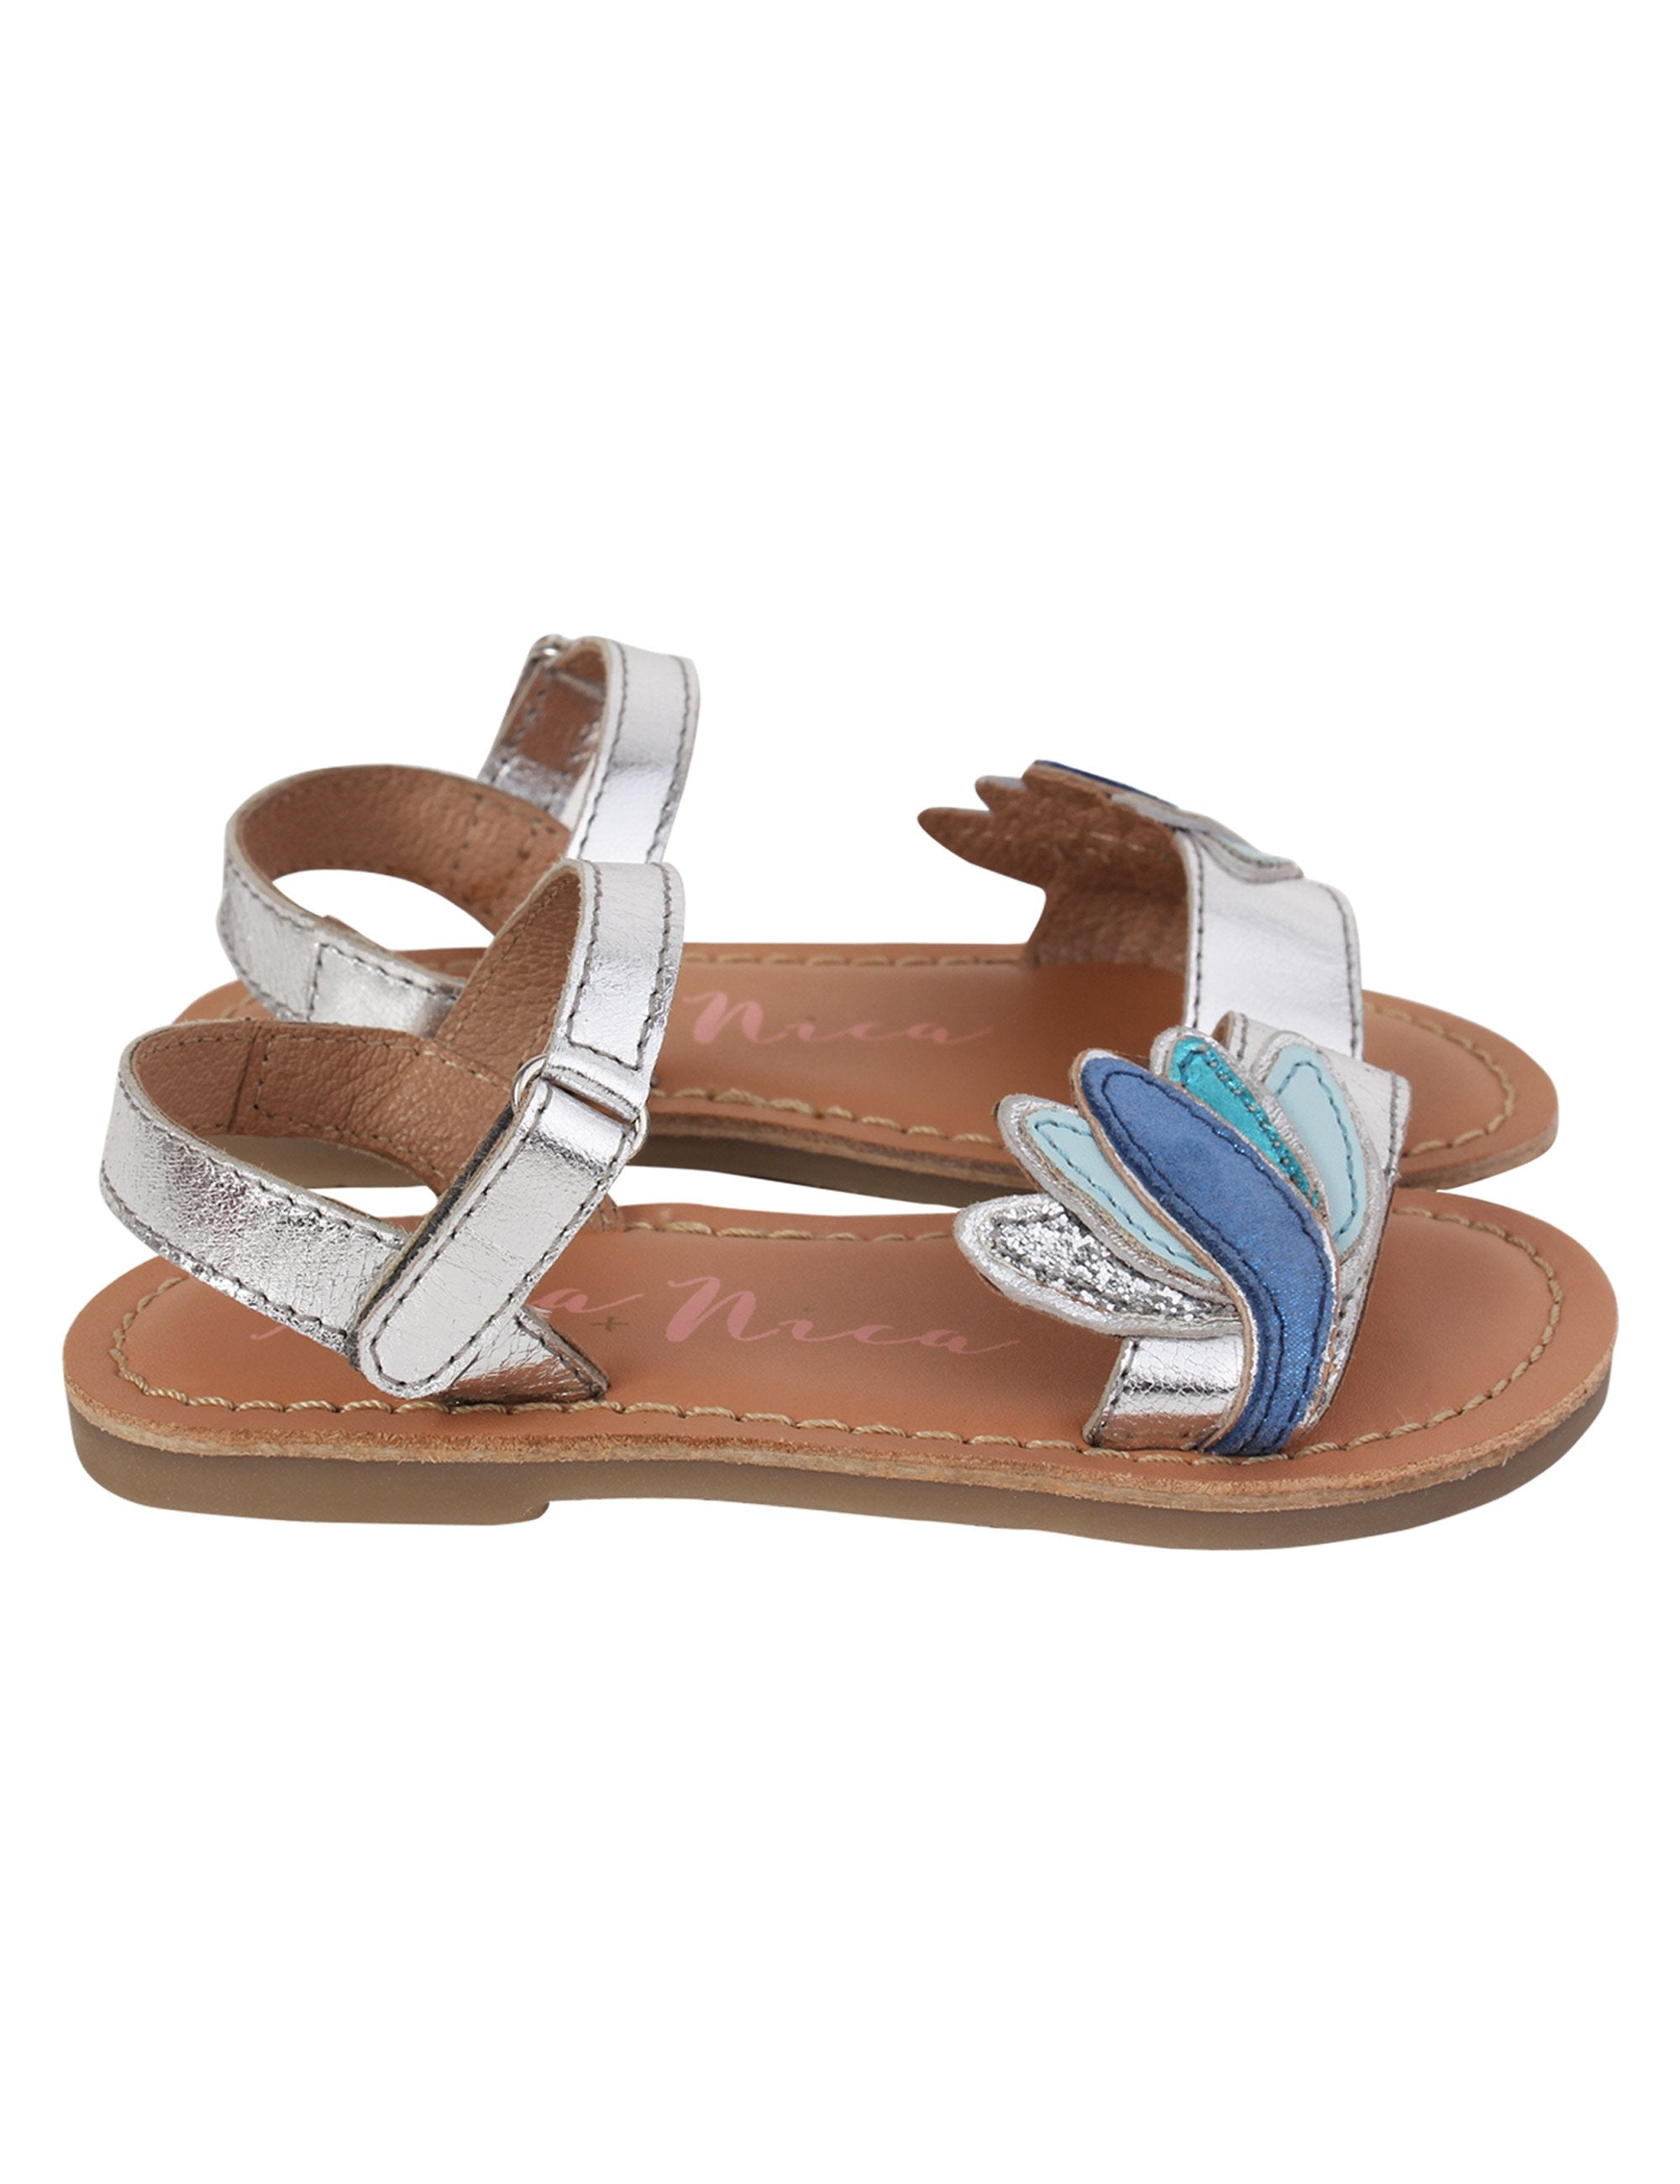 Lotus Flats for Girls in Blue and White Colour